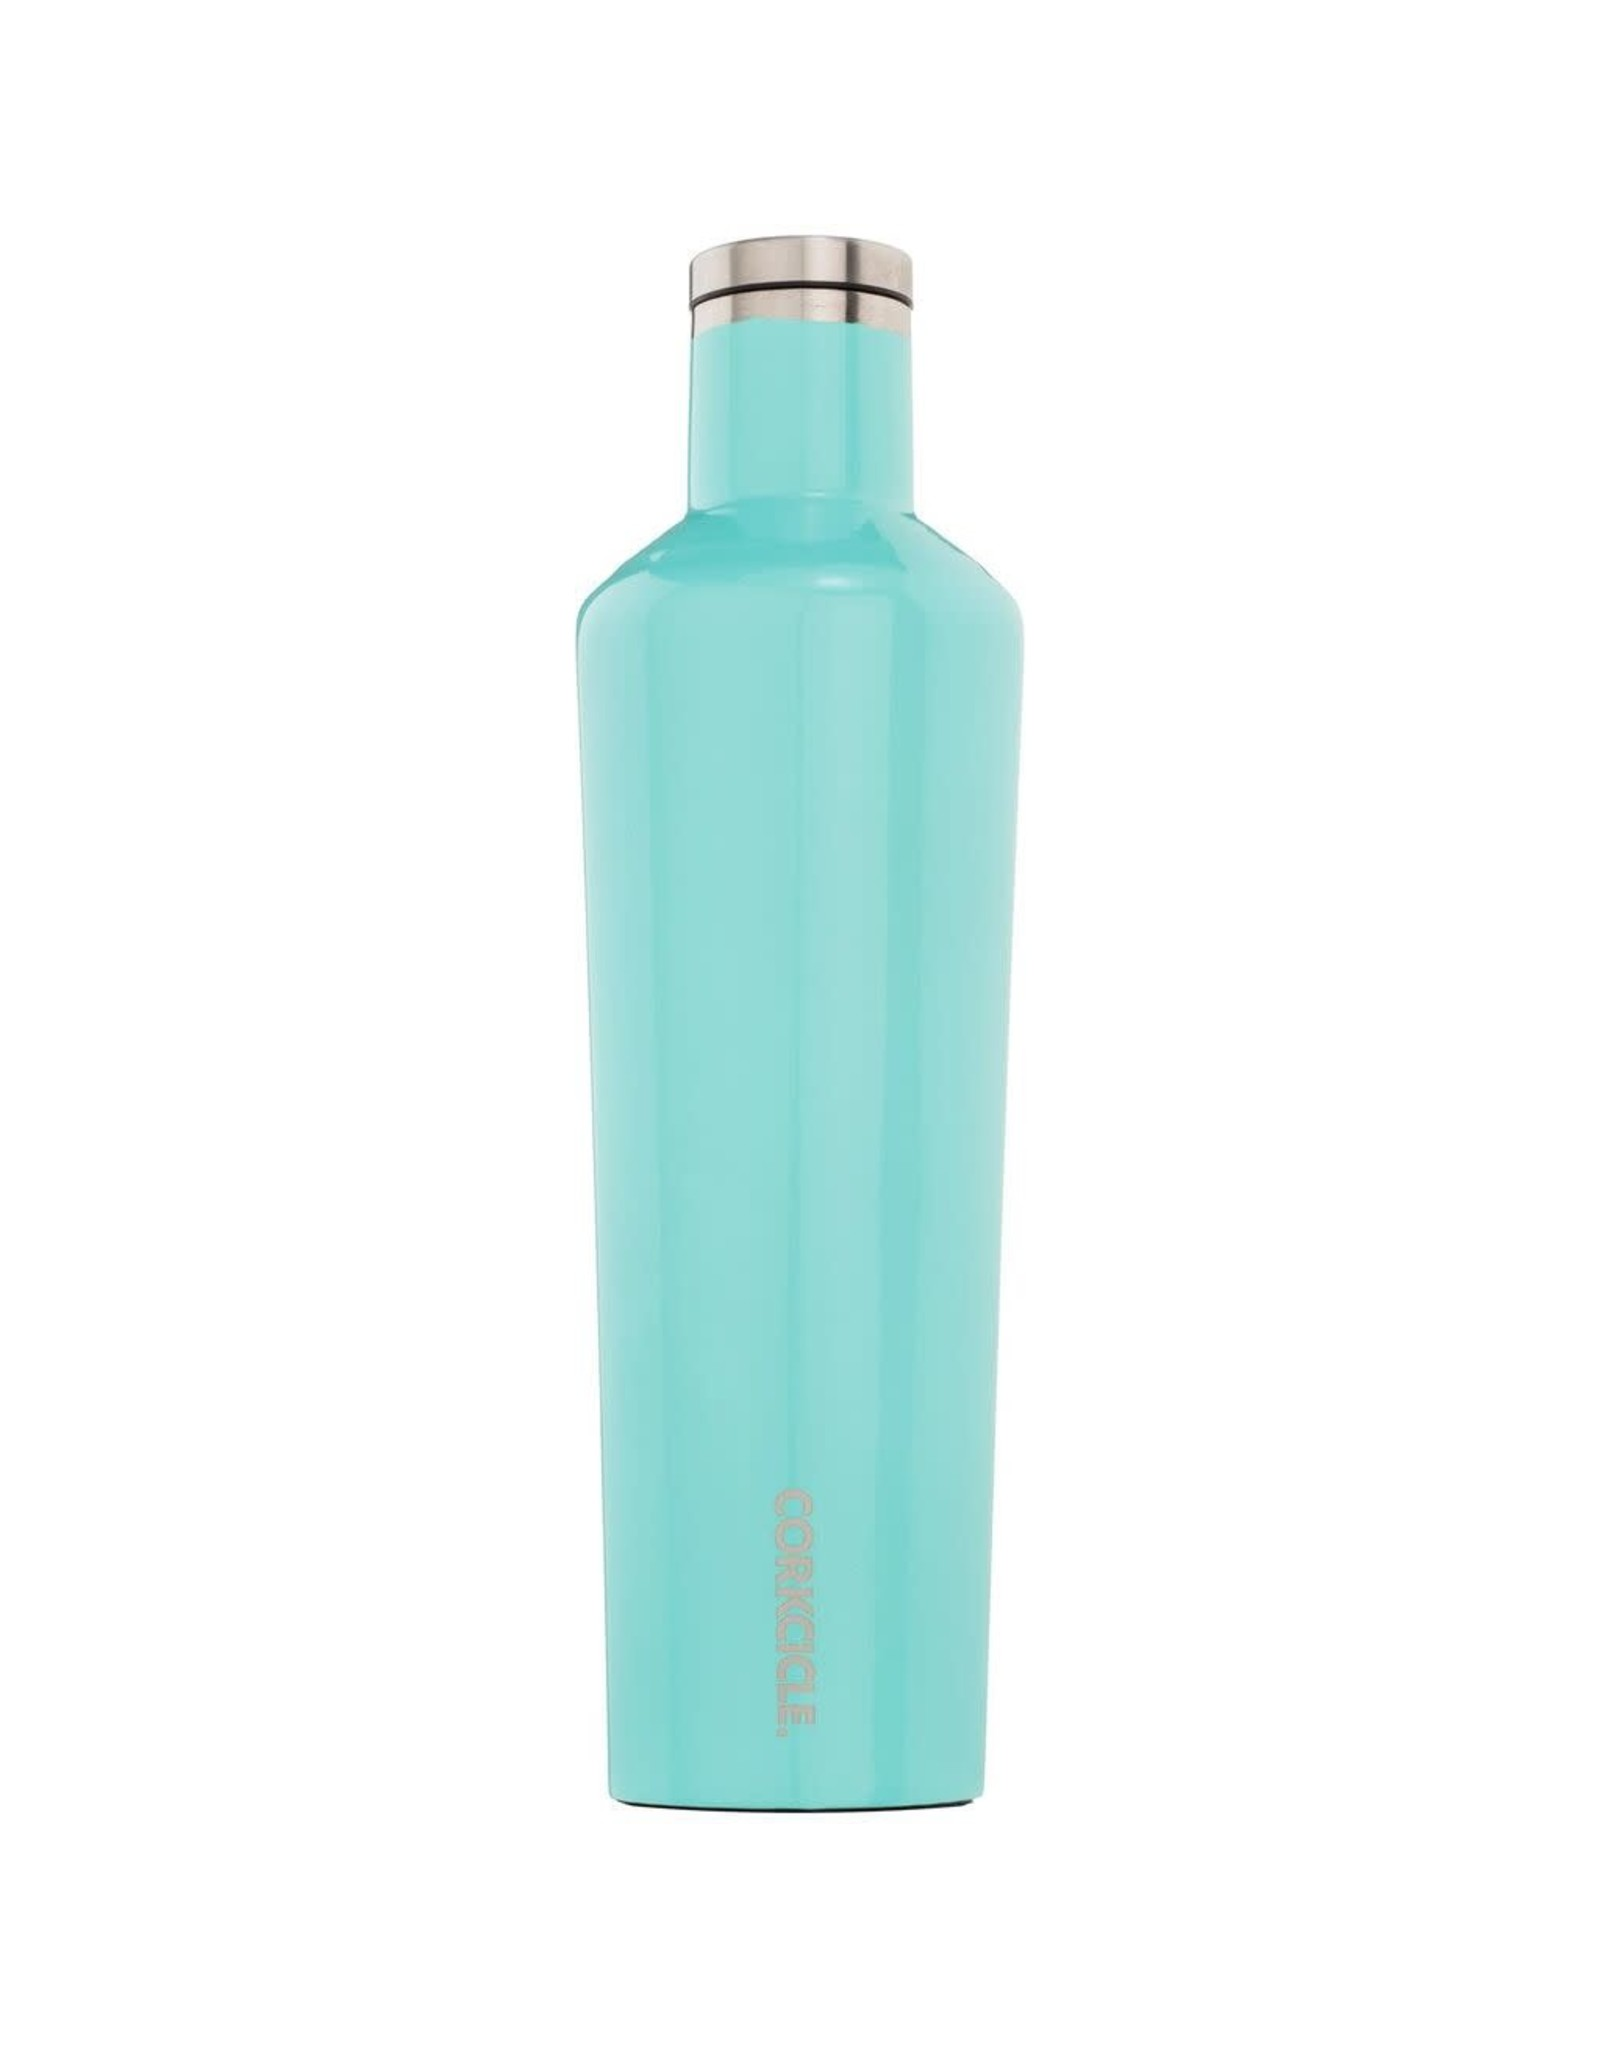 Corkcicle CORKCICLE 25oz Canteen - Gloss Turquoise